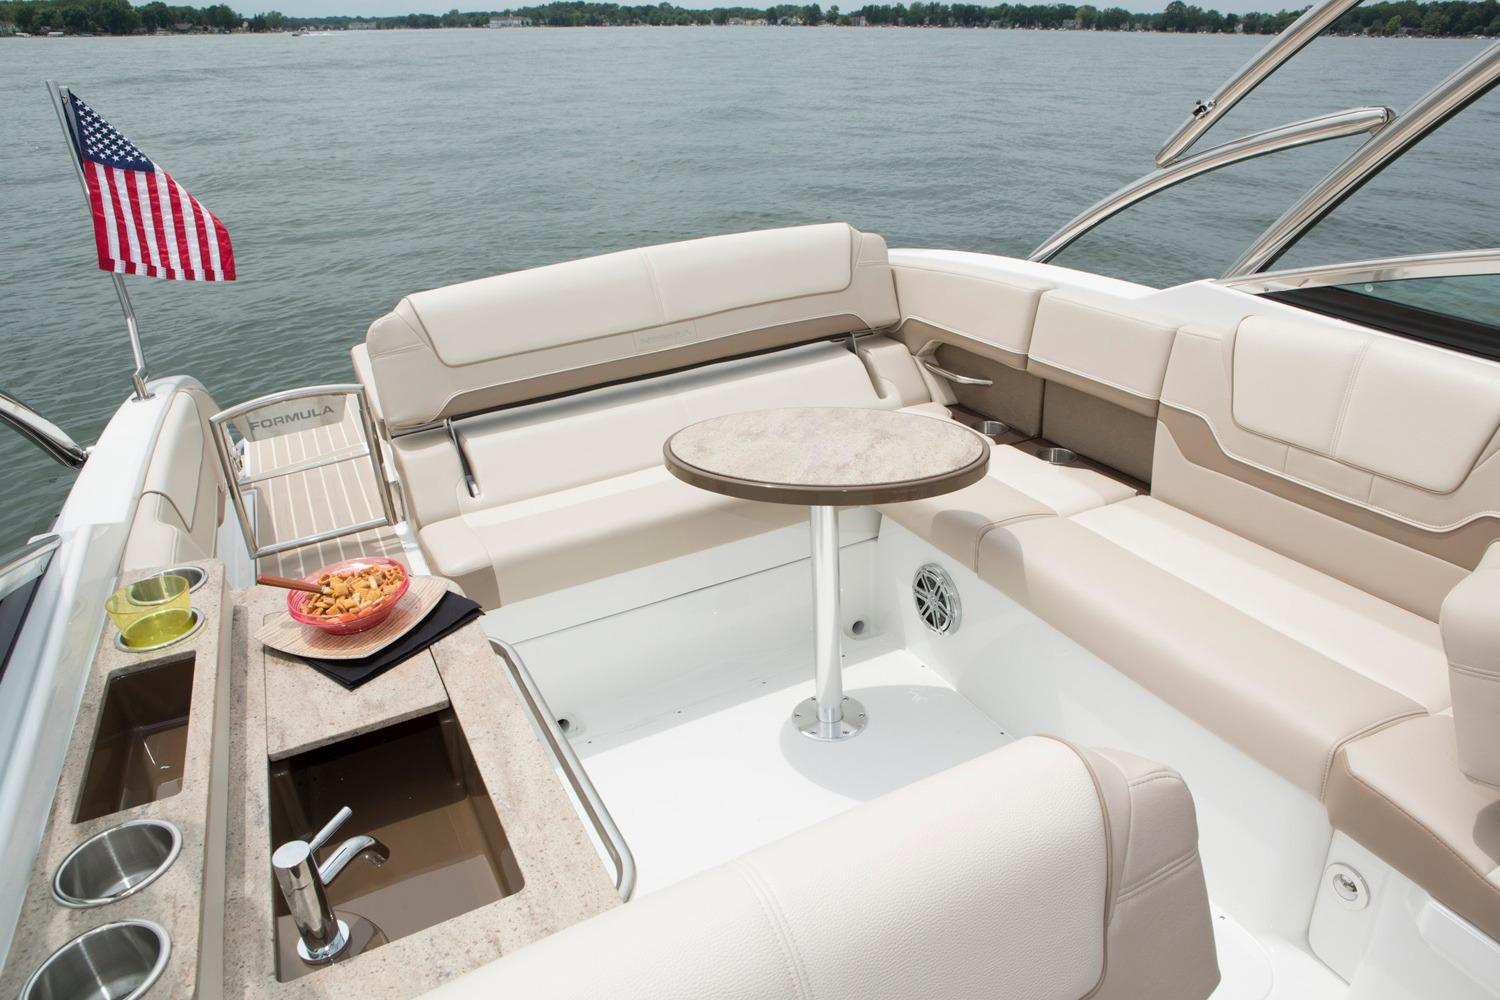 2016 Formula 290 Bowrider in Round Lake, Illinois